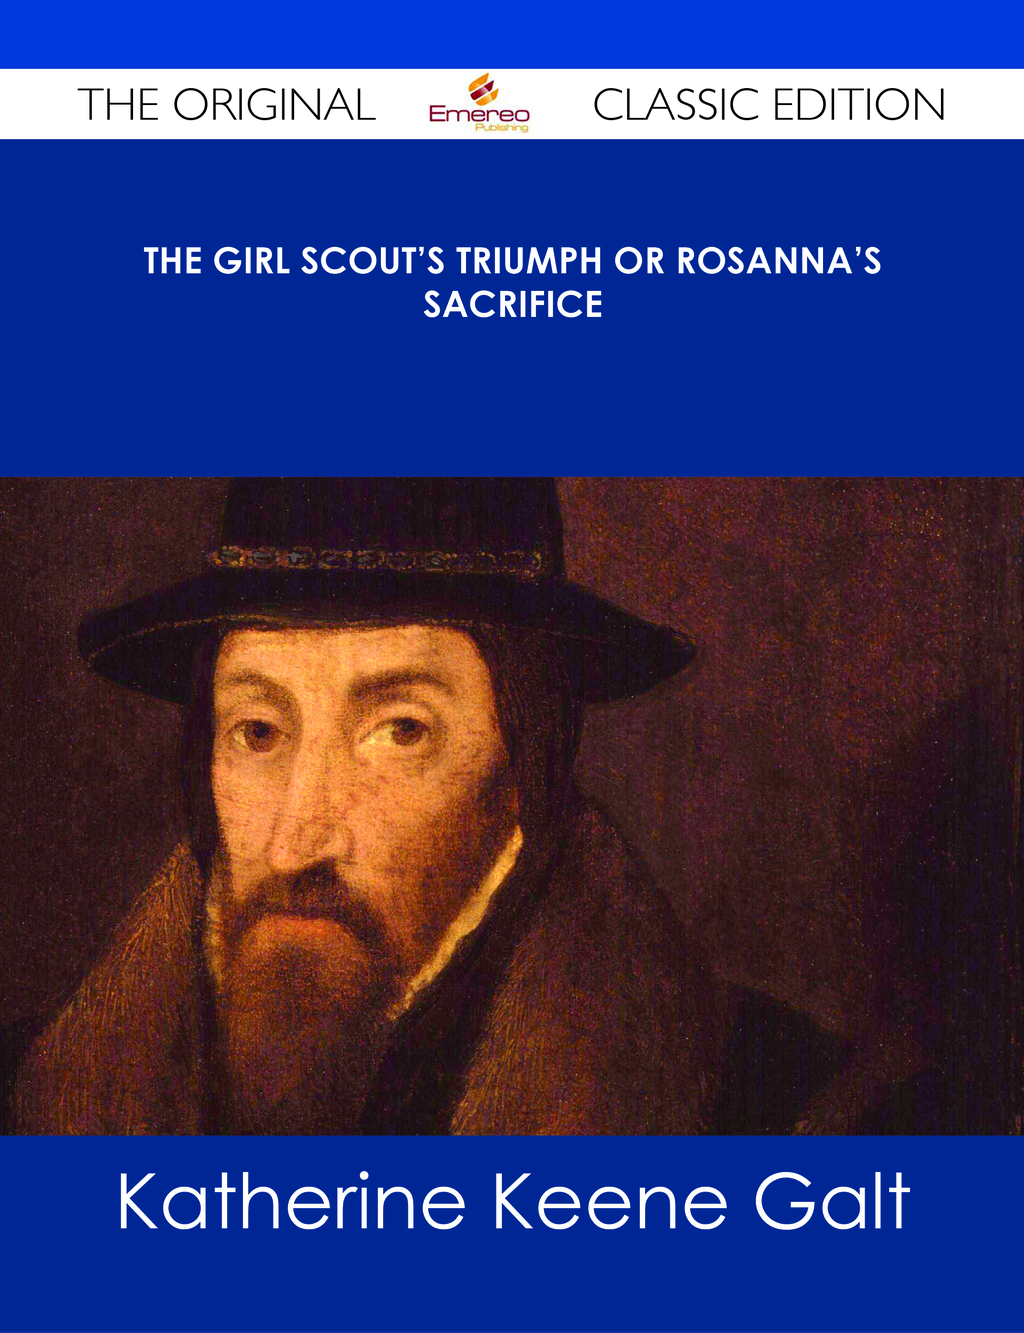 The Girl Scout's Triumph or Rosanna's Sacrifice - The Original Classic Edition